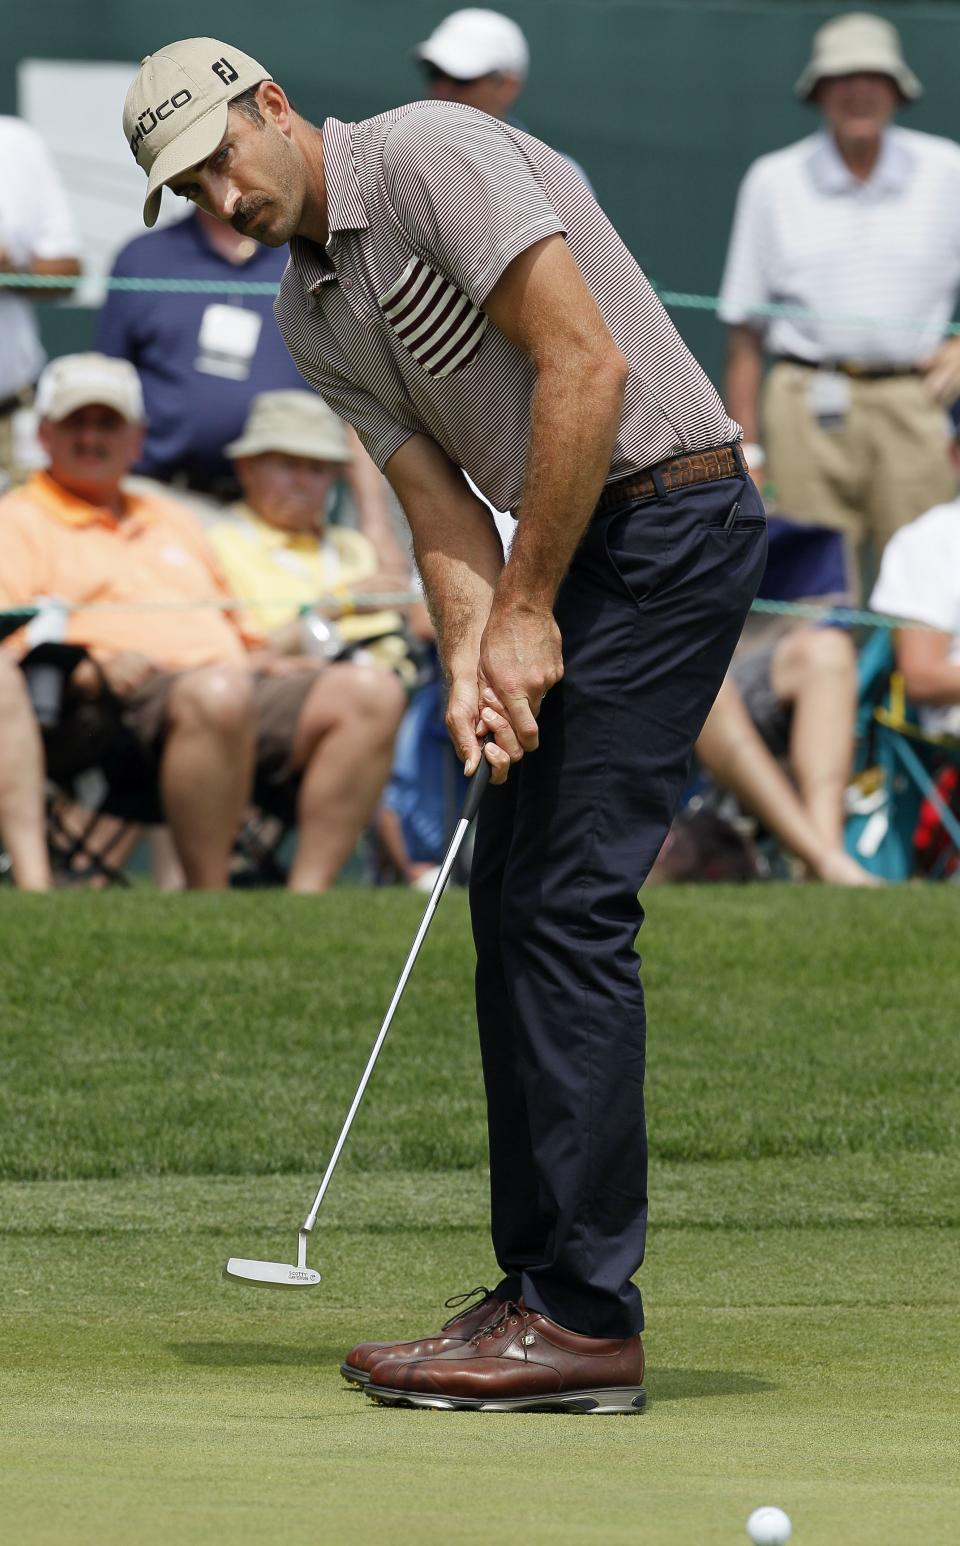 Geoff Ogilvy, of Australia, putts on the 18th green during the third round of the Wells Fargo Championship golf tournament at Quail Hollow Club in Charlotte, N.C., Saturday, May 5, 2012. (AP Photo/Gerry Broome)